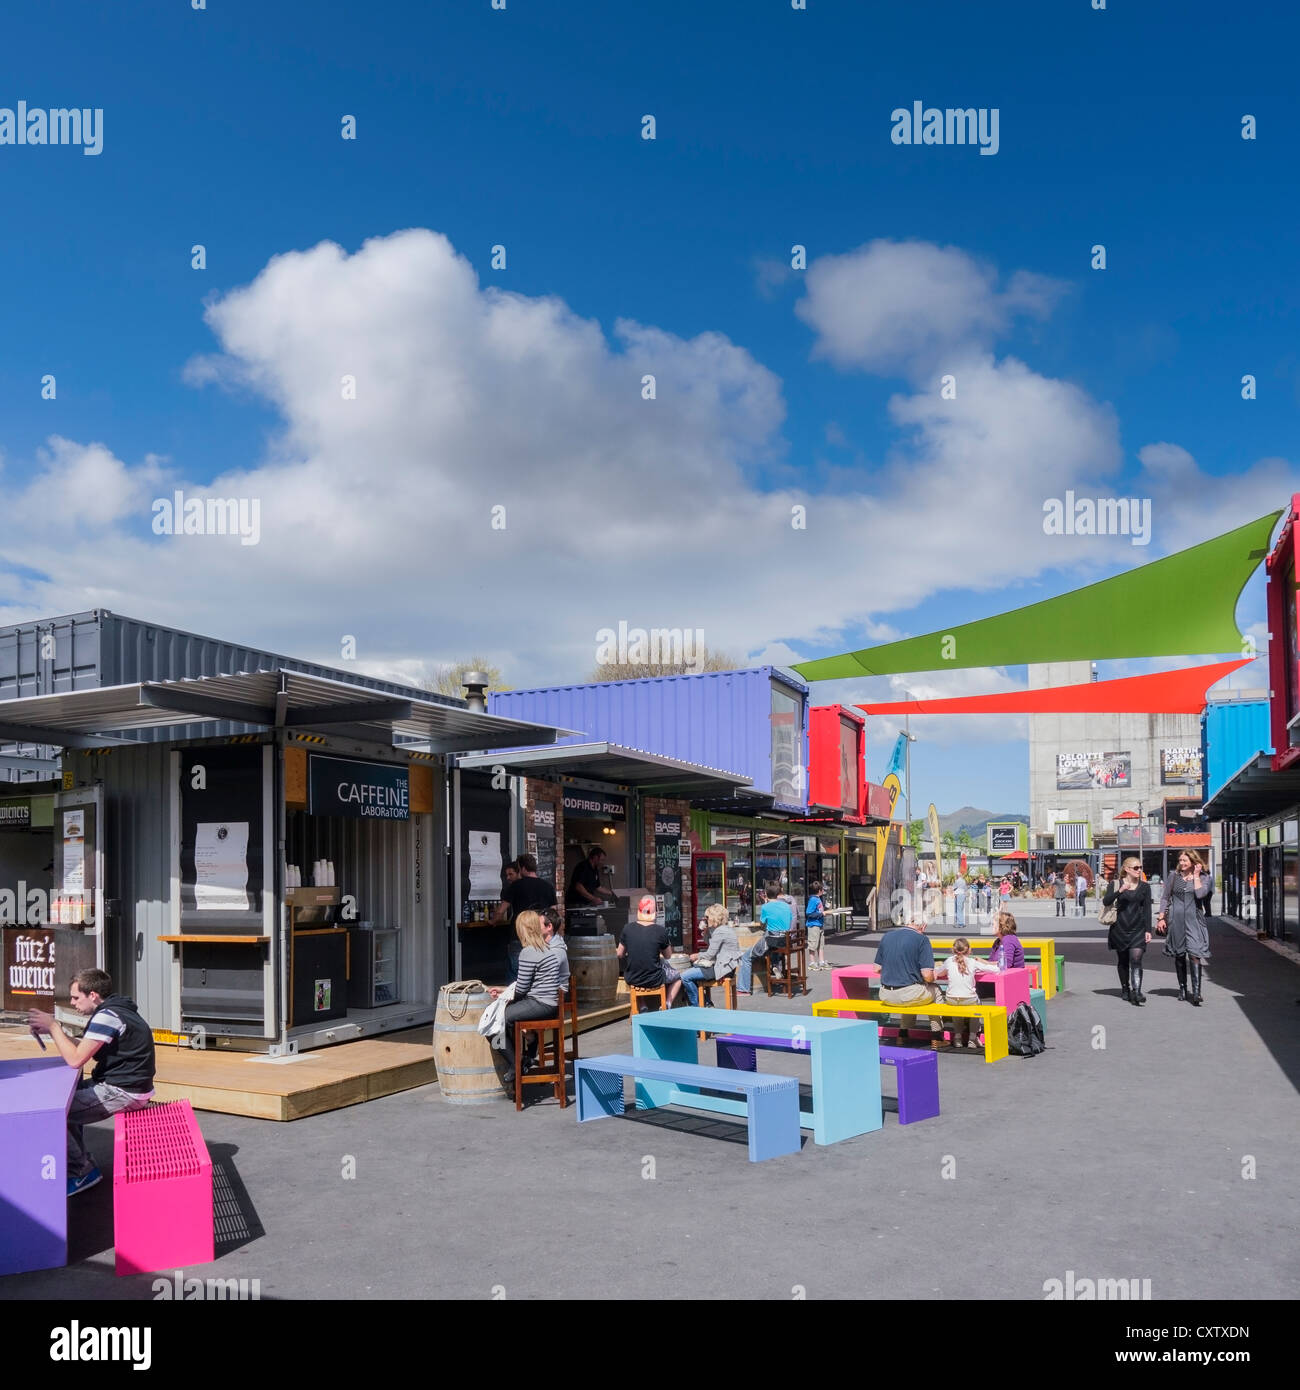 People relaxing at an outdoor coffee shop in the Container Mall, Christchurch, New Zealand. - Stock Image